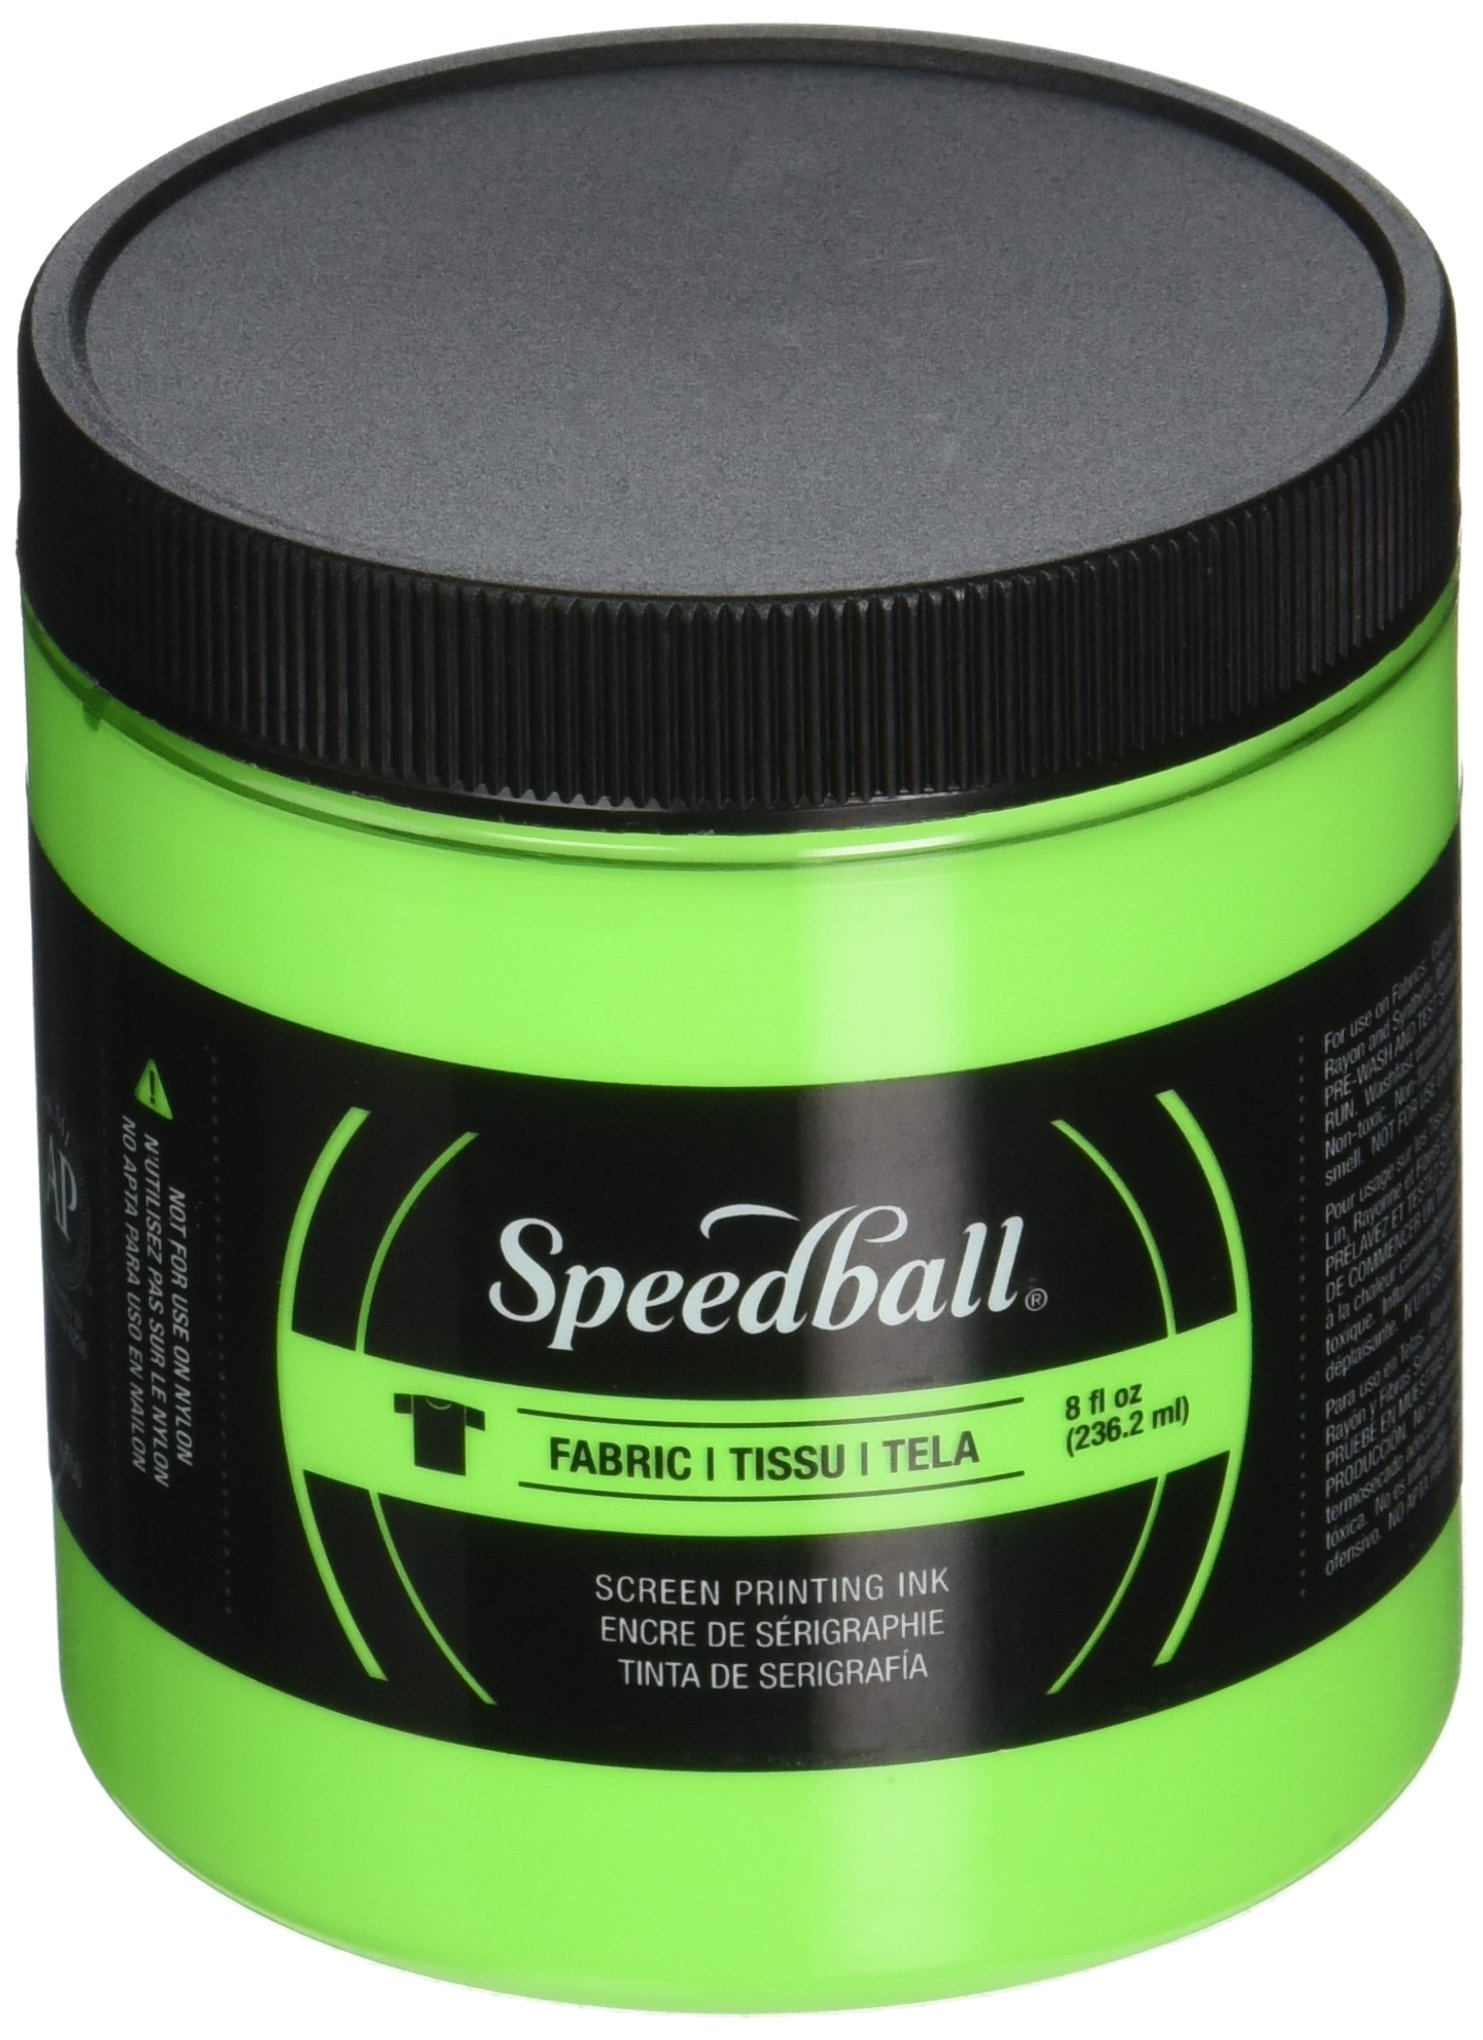 Speedball Art Products Fluorescent Fabric Screen Printing Ink, 8 oz, Lime Green by Speedball